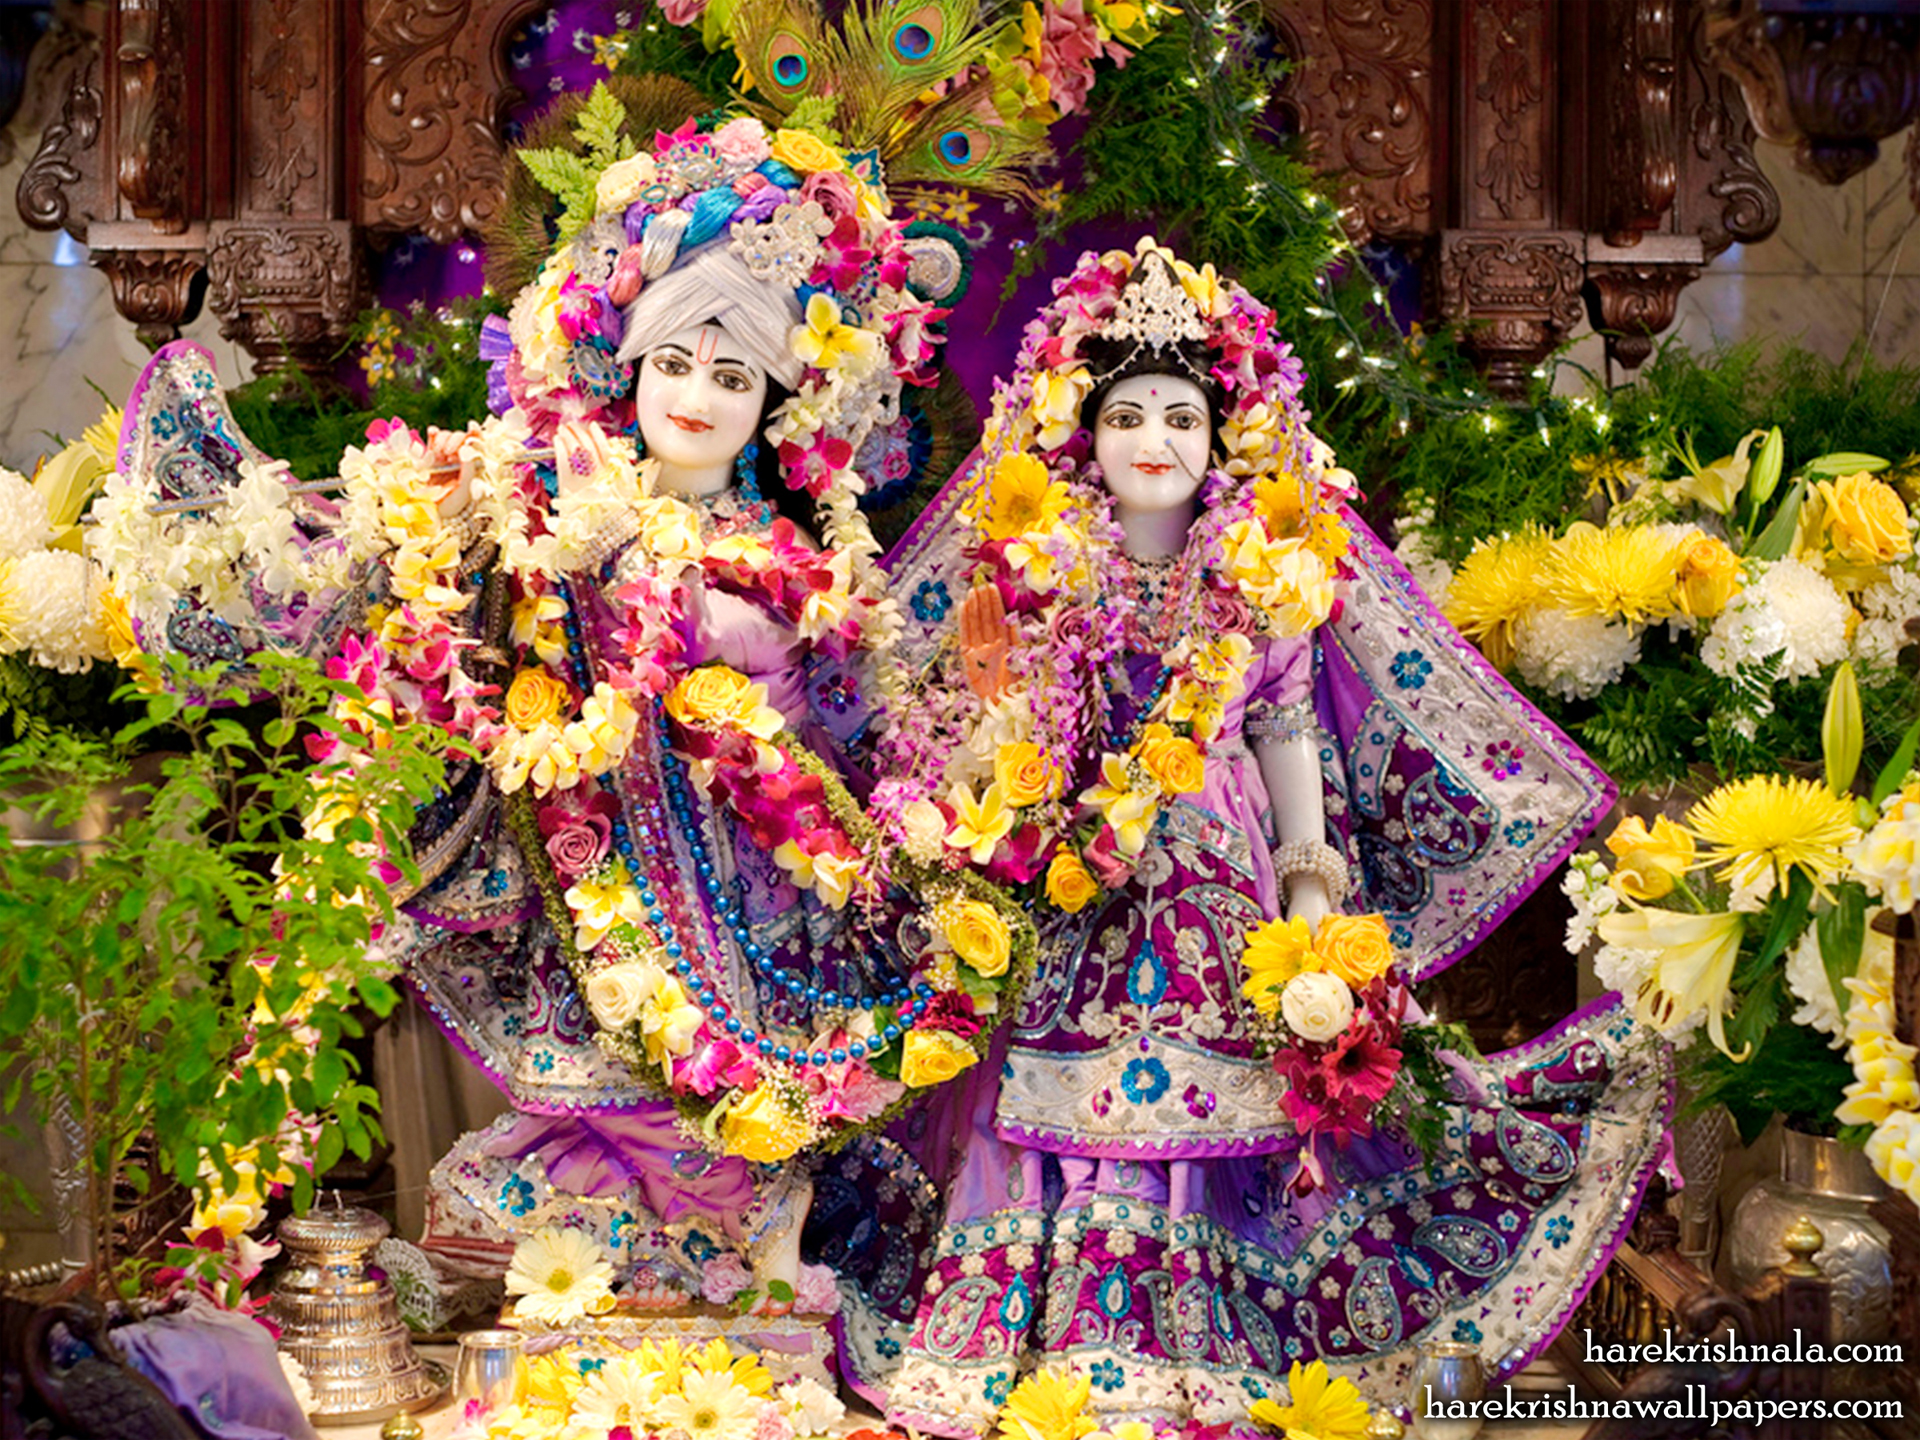 Sri Sri Rukmini Dwarkadhish Wallpaper (009) Size 1920x1440 Download